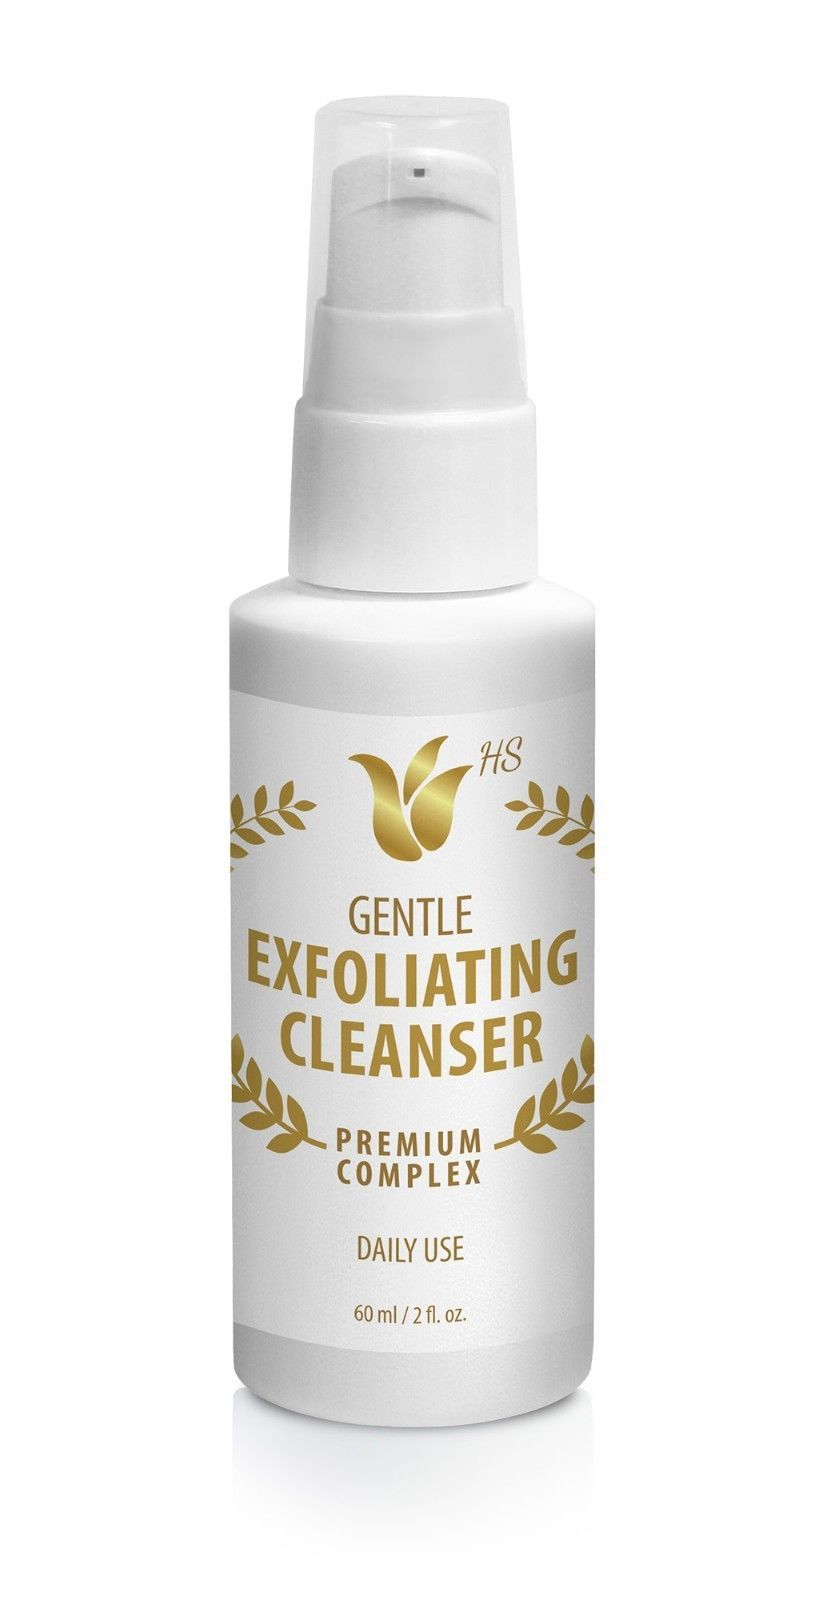 Clean and clear gentle cleanser